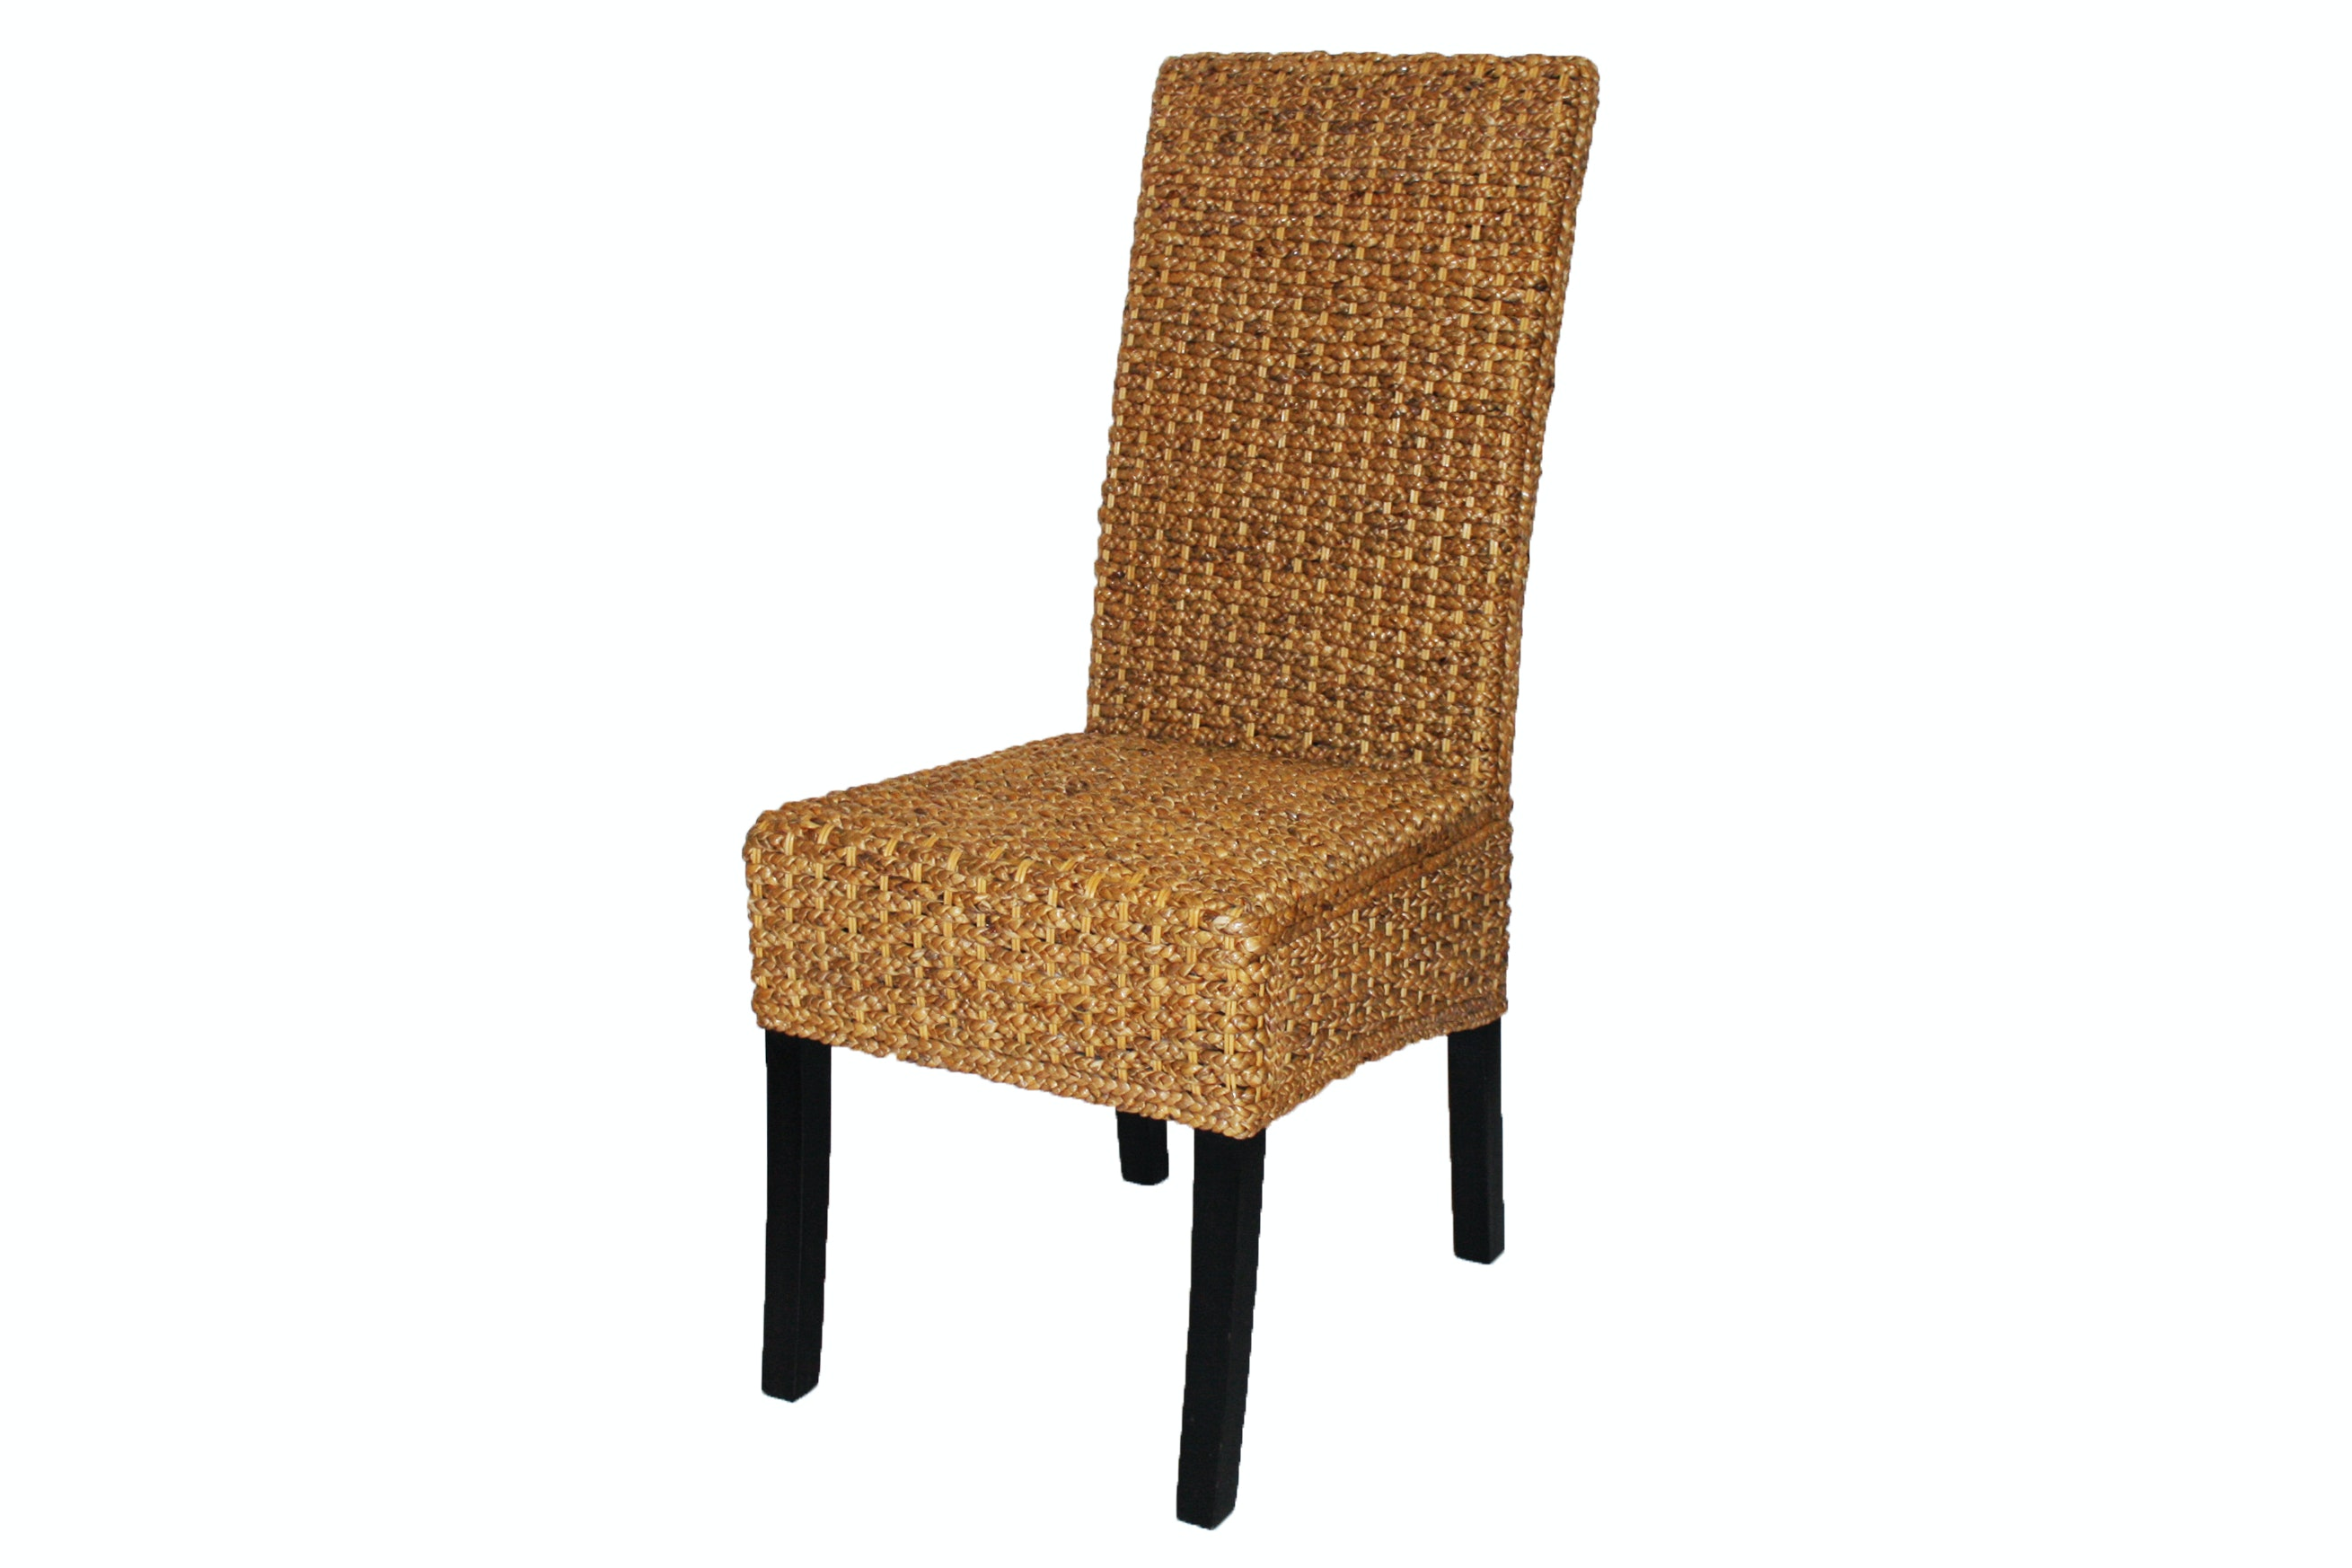 Braided Wicker Side Chair